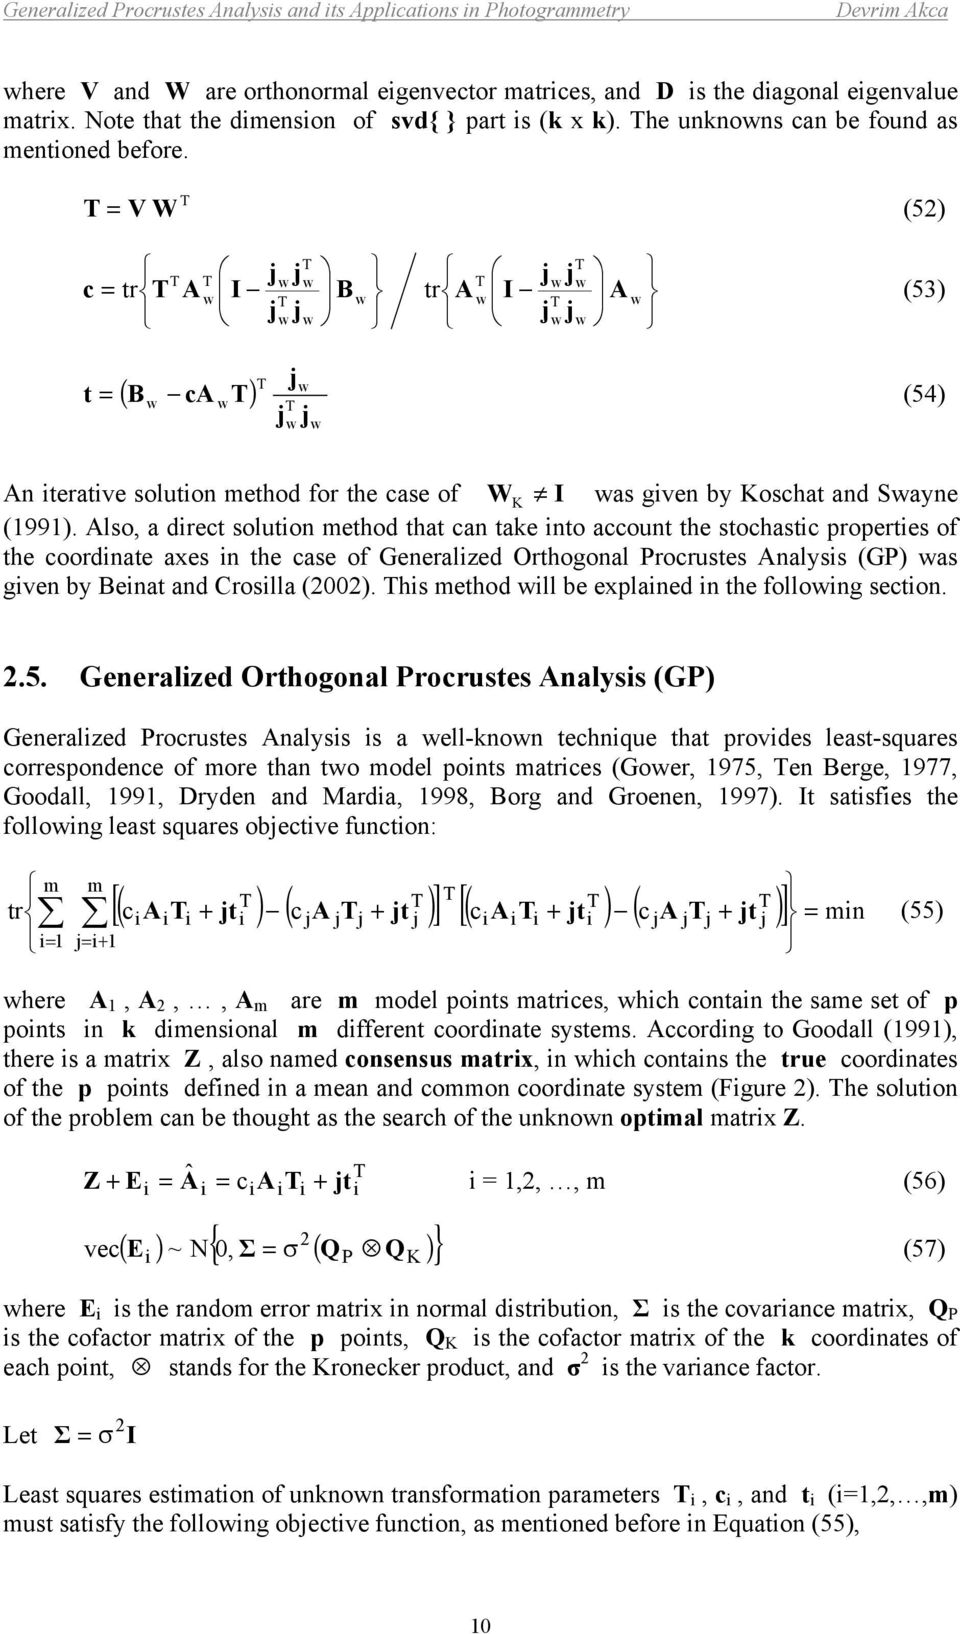 lso, a drect soluton ethod that can take nto account the stochastc propertes of the coordnate aes n the case of Generaled Orthogonal Procrustes nalss (GP) was gven b enat and Croslla ().